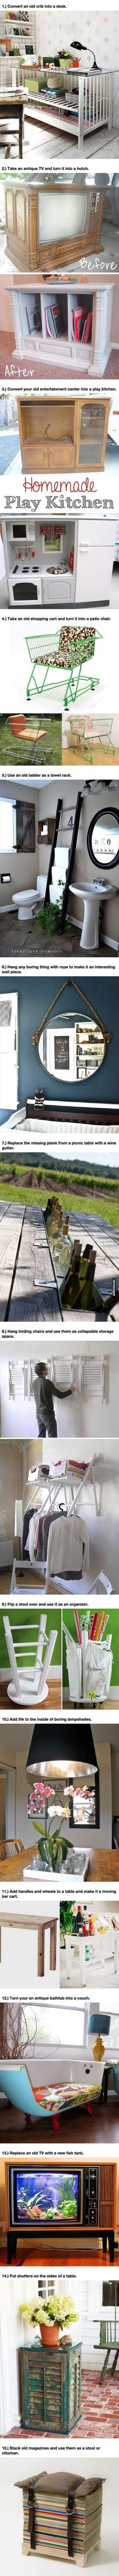 15 Tricks To Make Your Furniture Look Better. - 9GAG